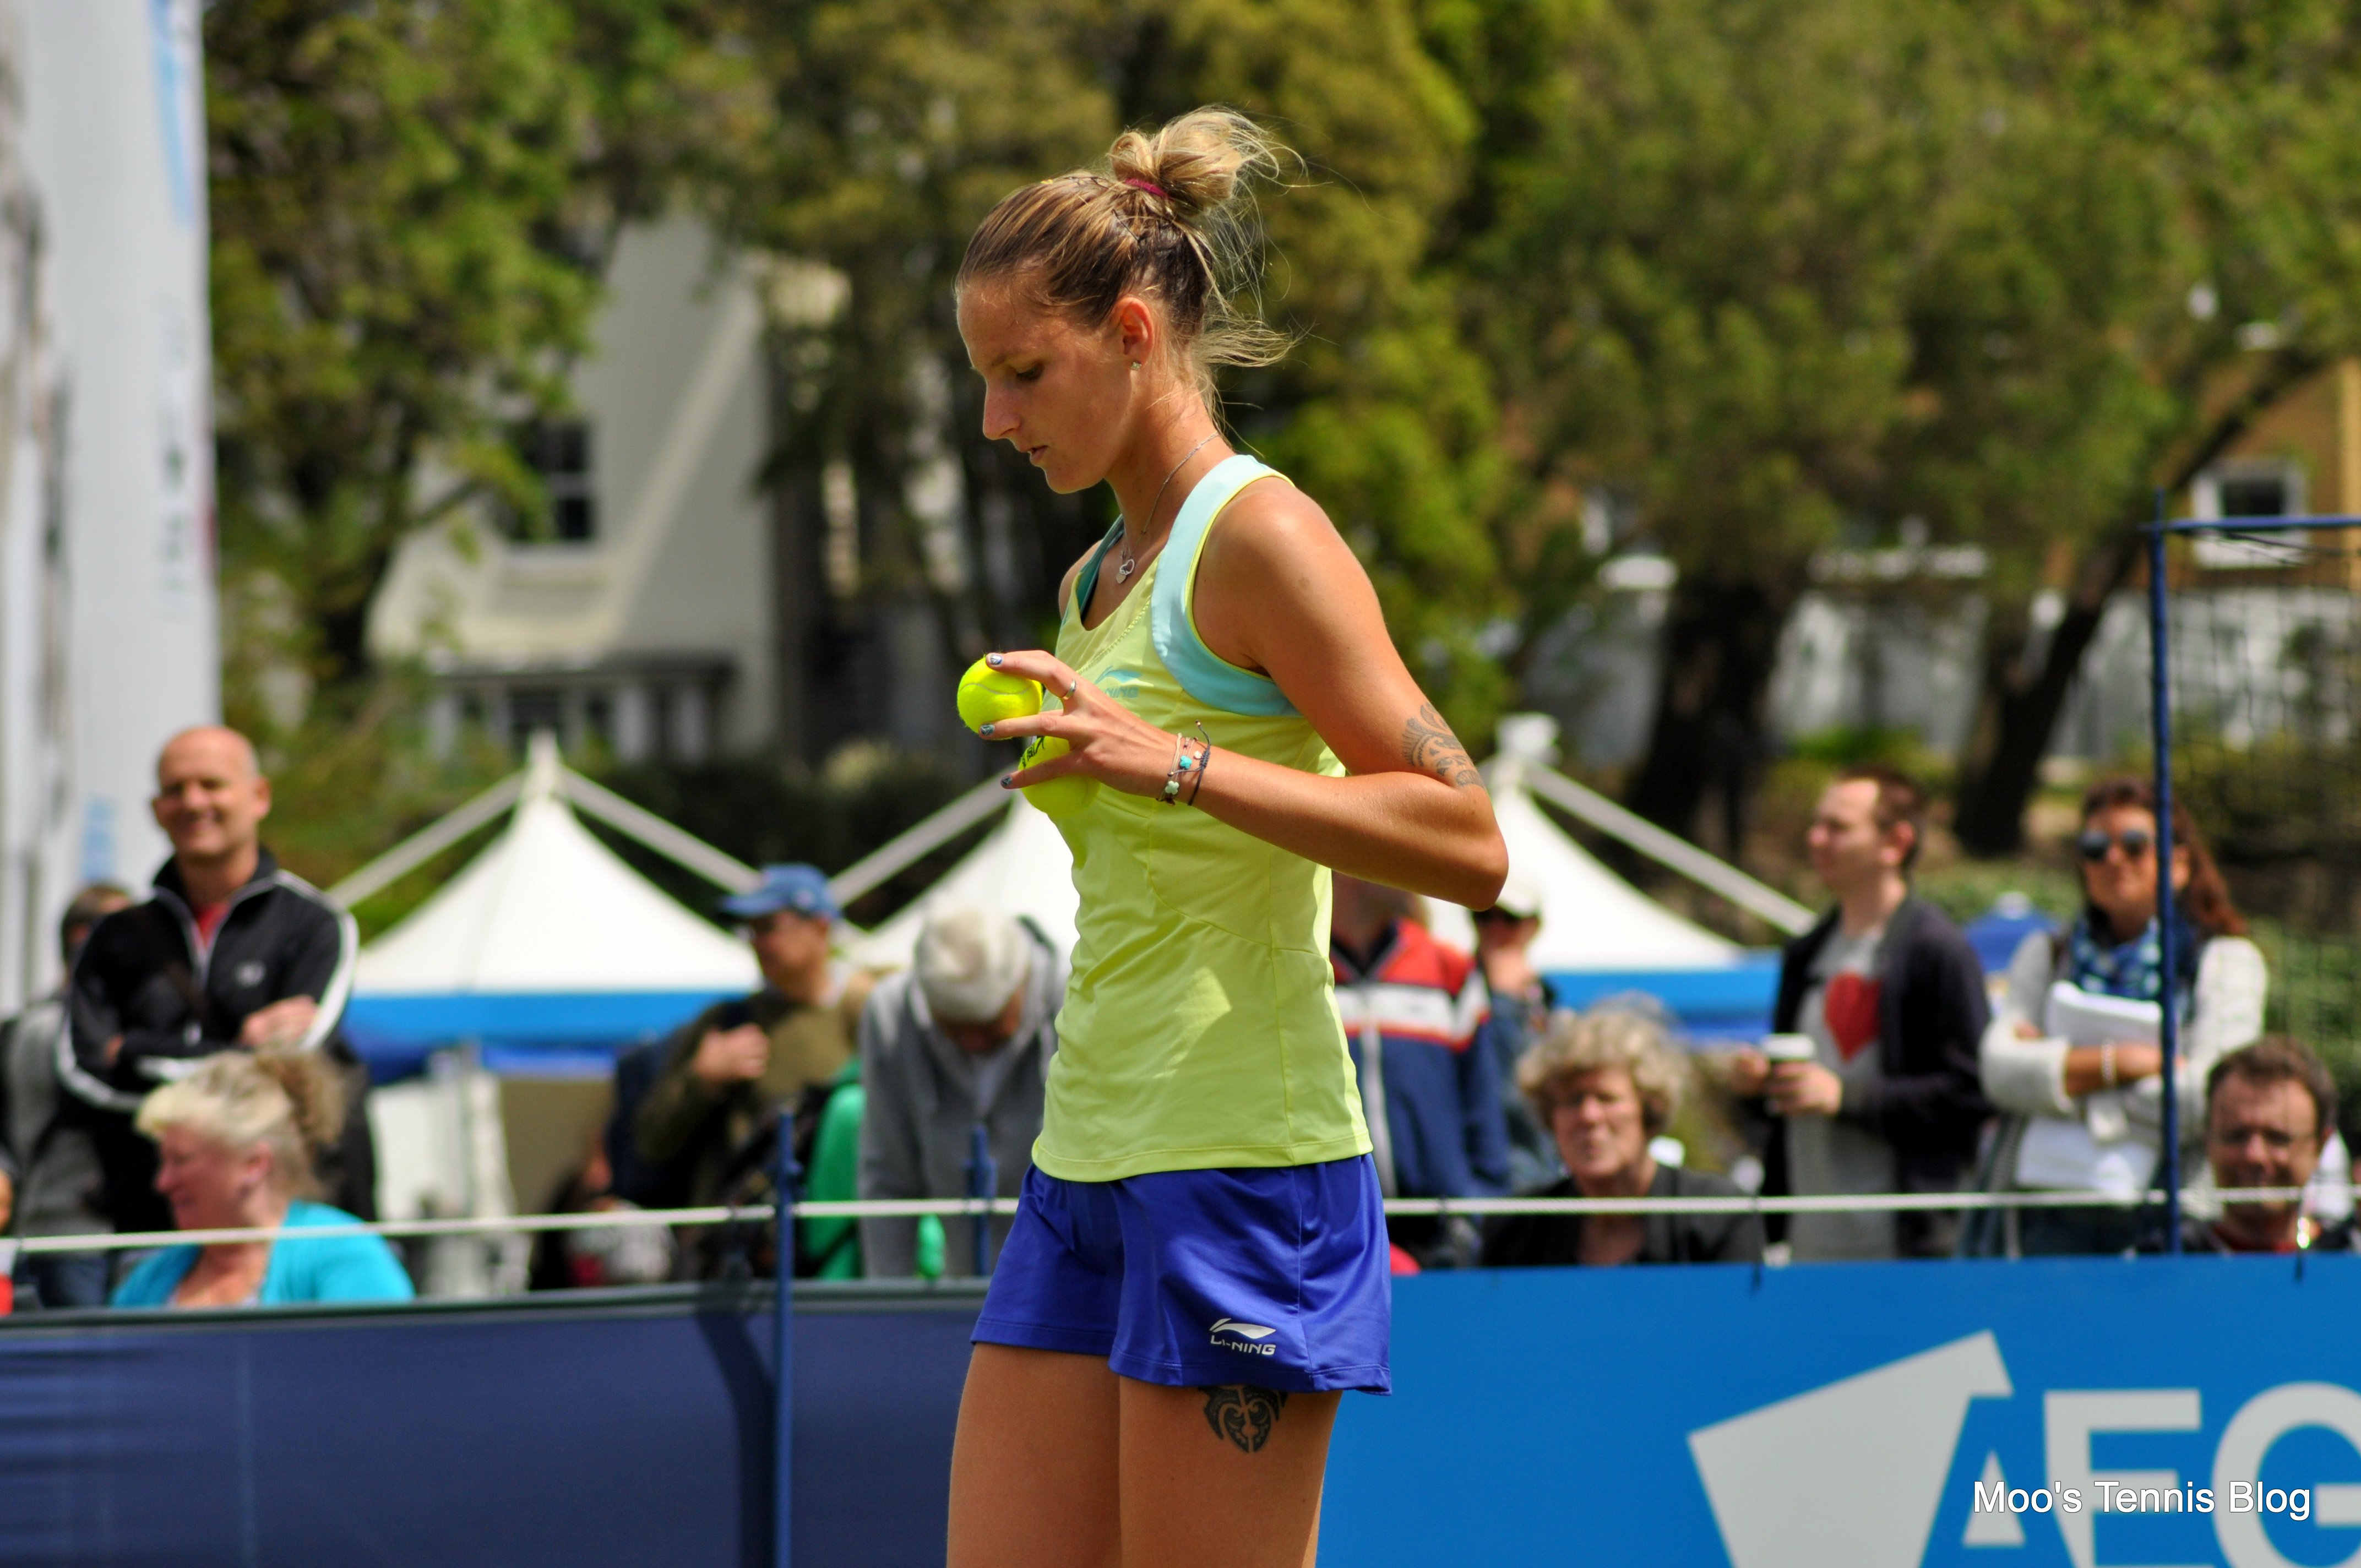 Pliskova schiavone betting expert predictions opcoes binarias martingale betting